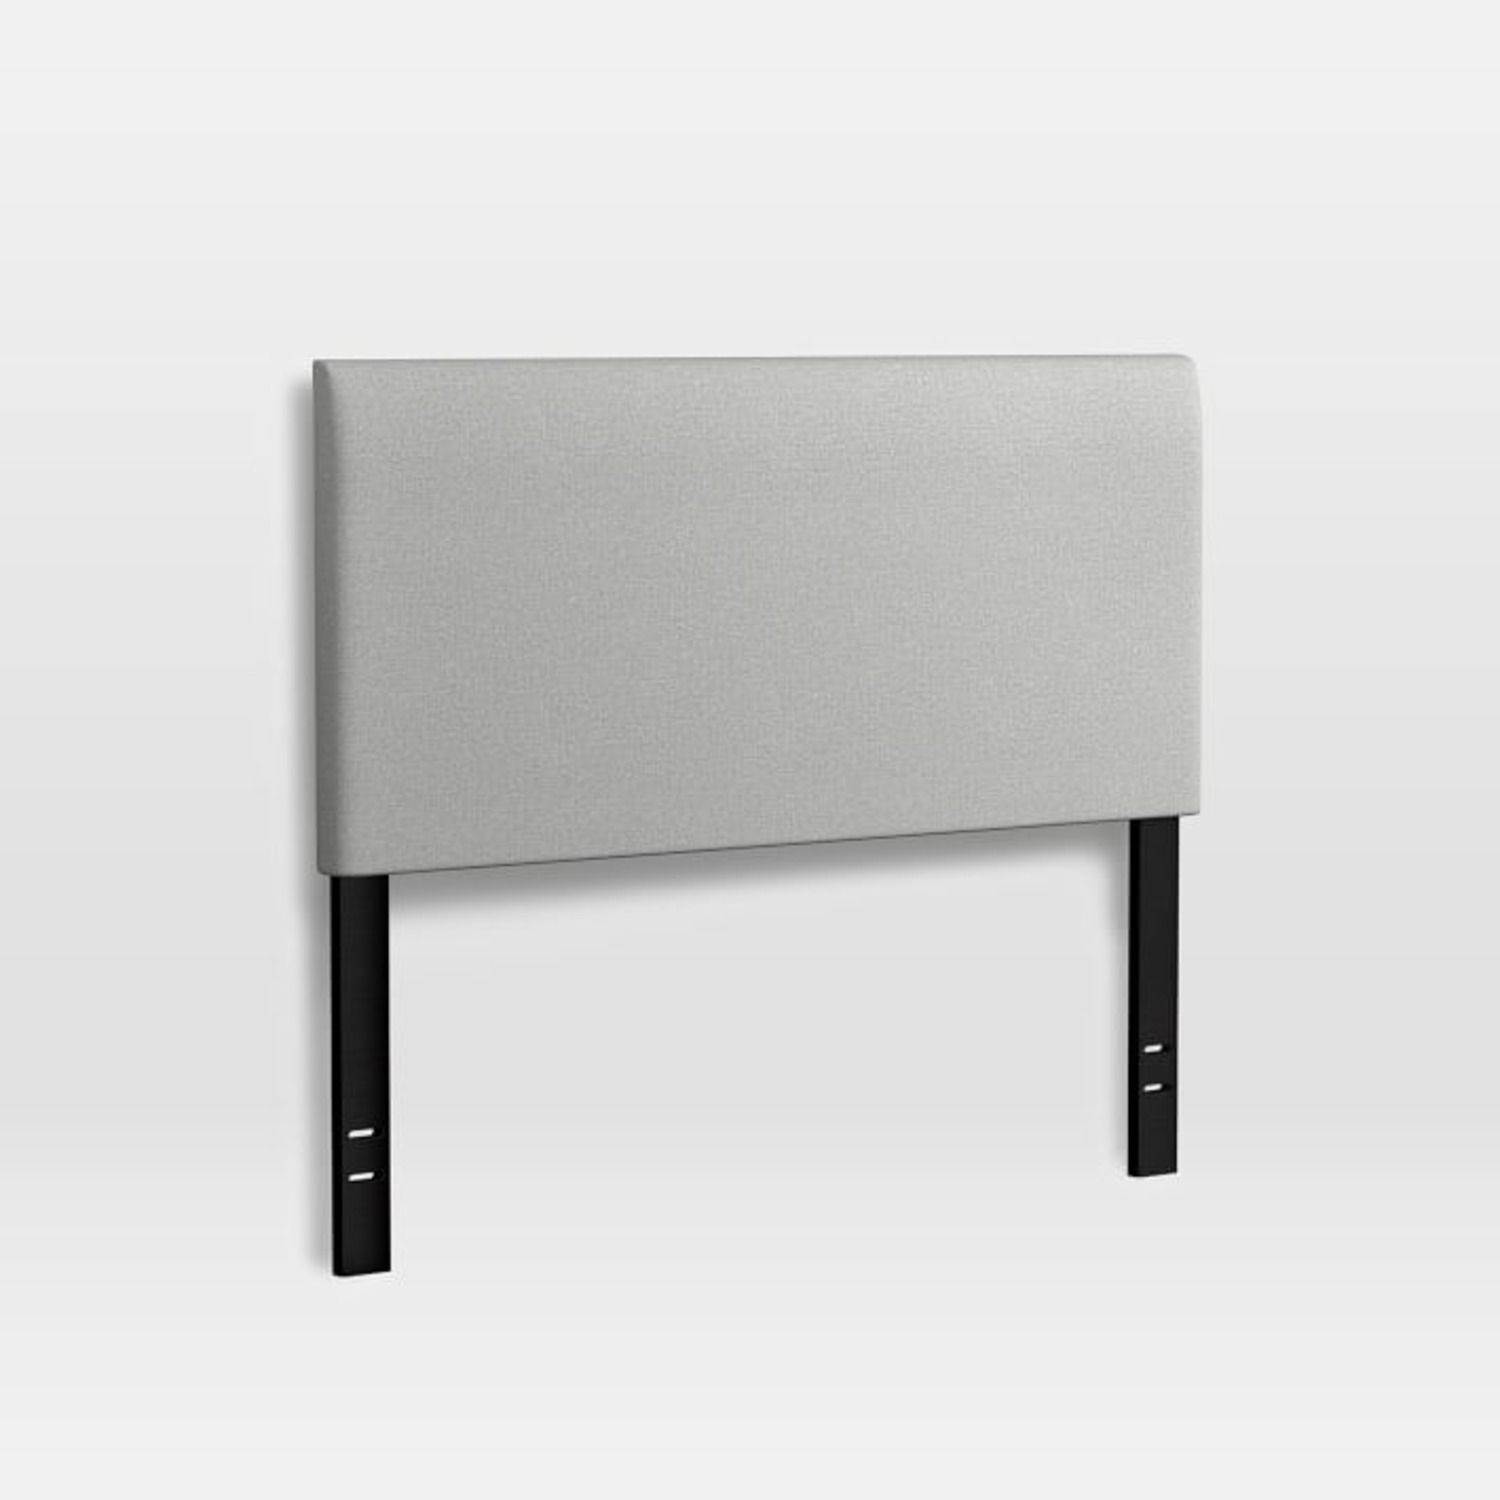 West Elm Andes Deco Headboard - image-1